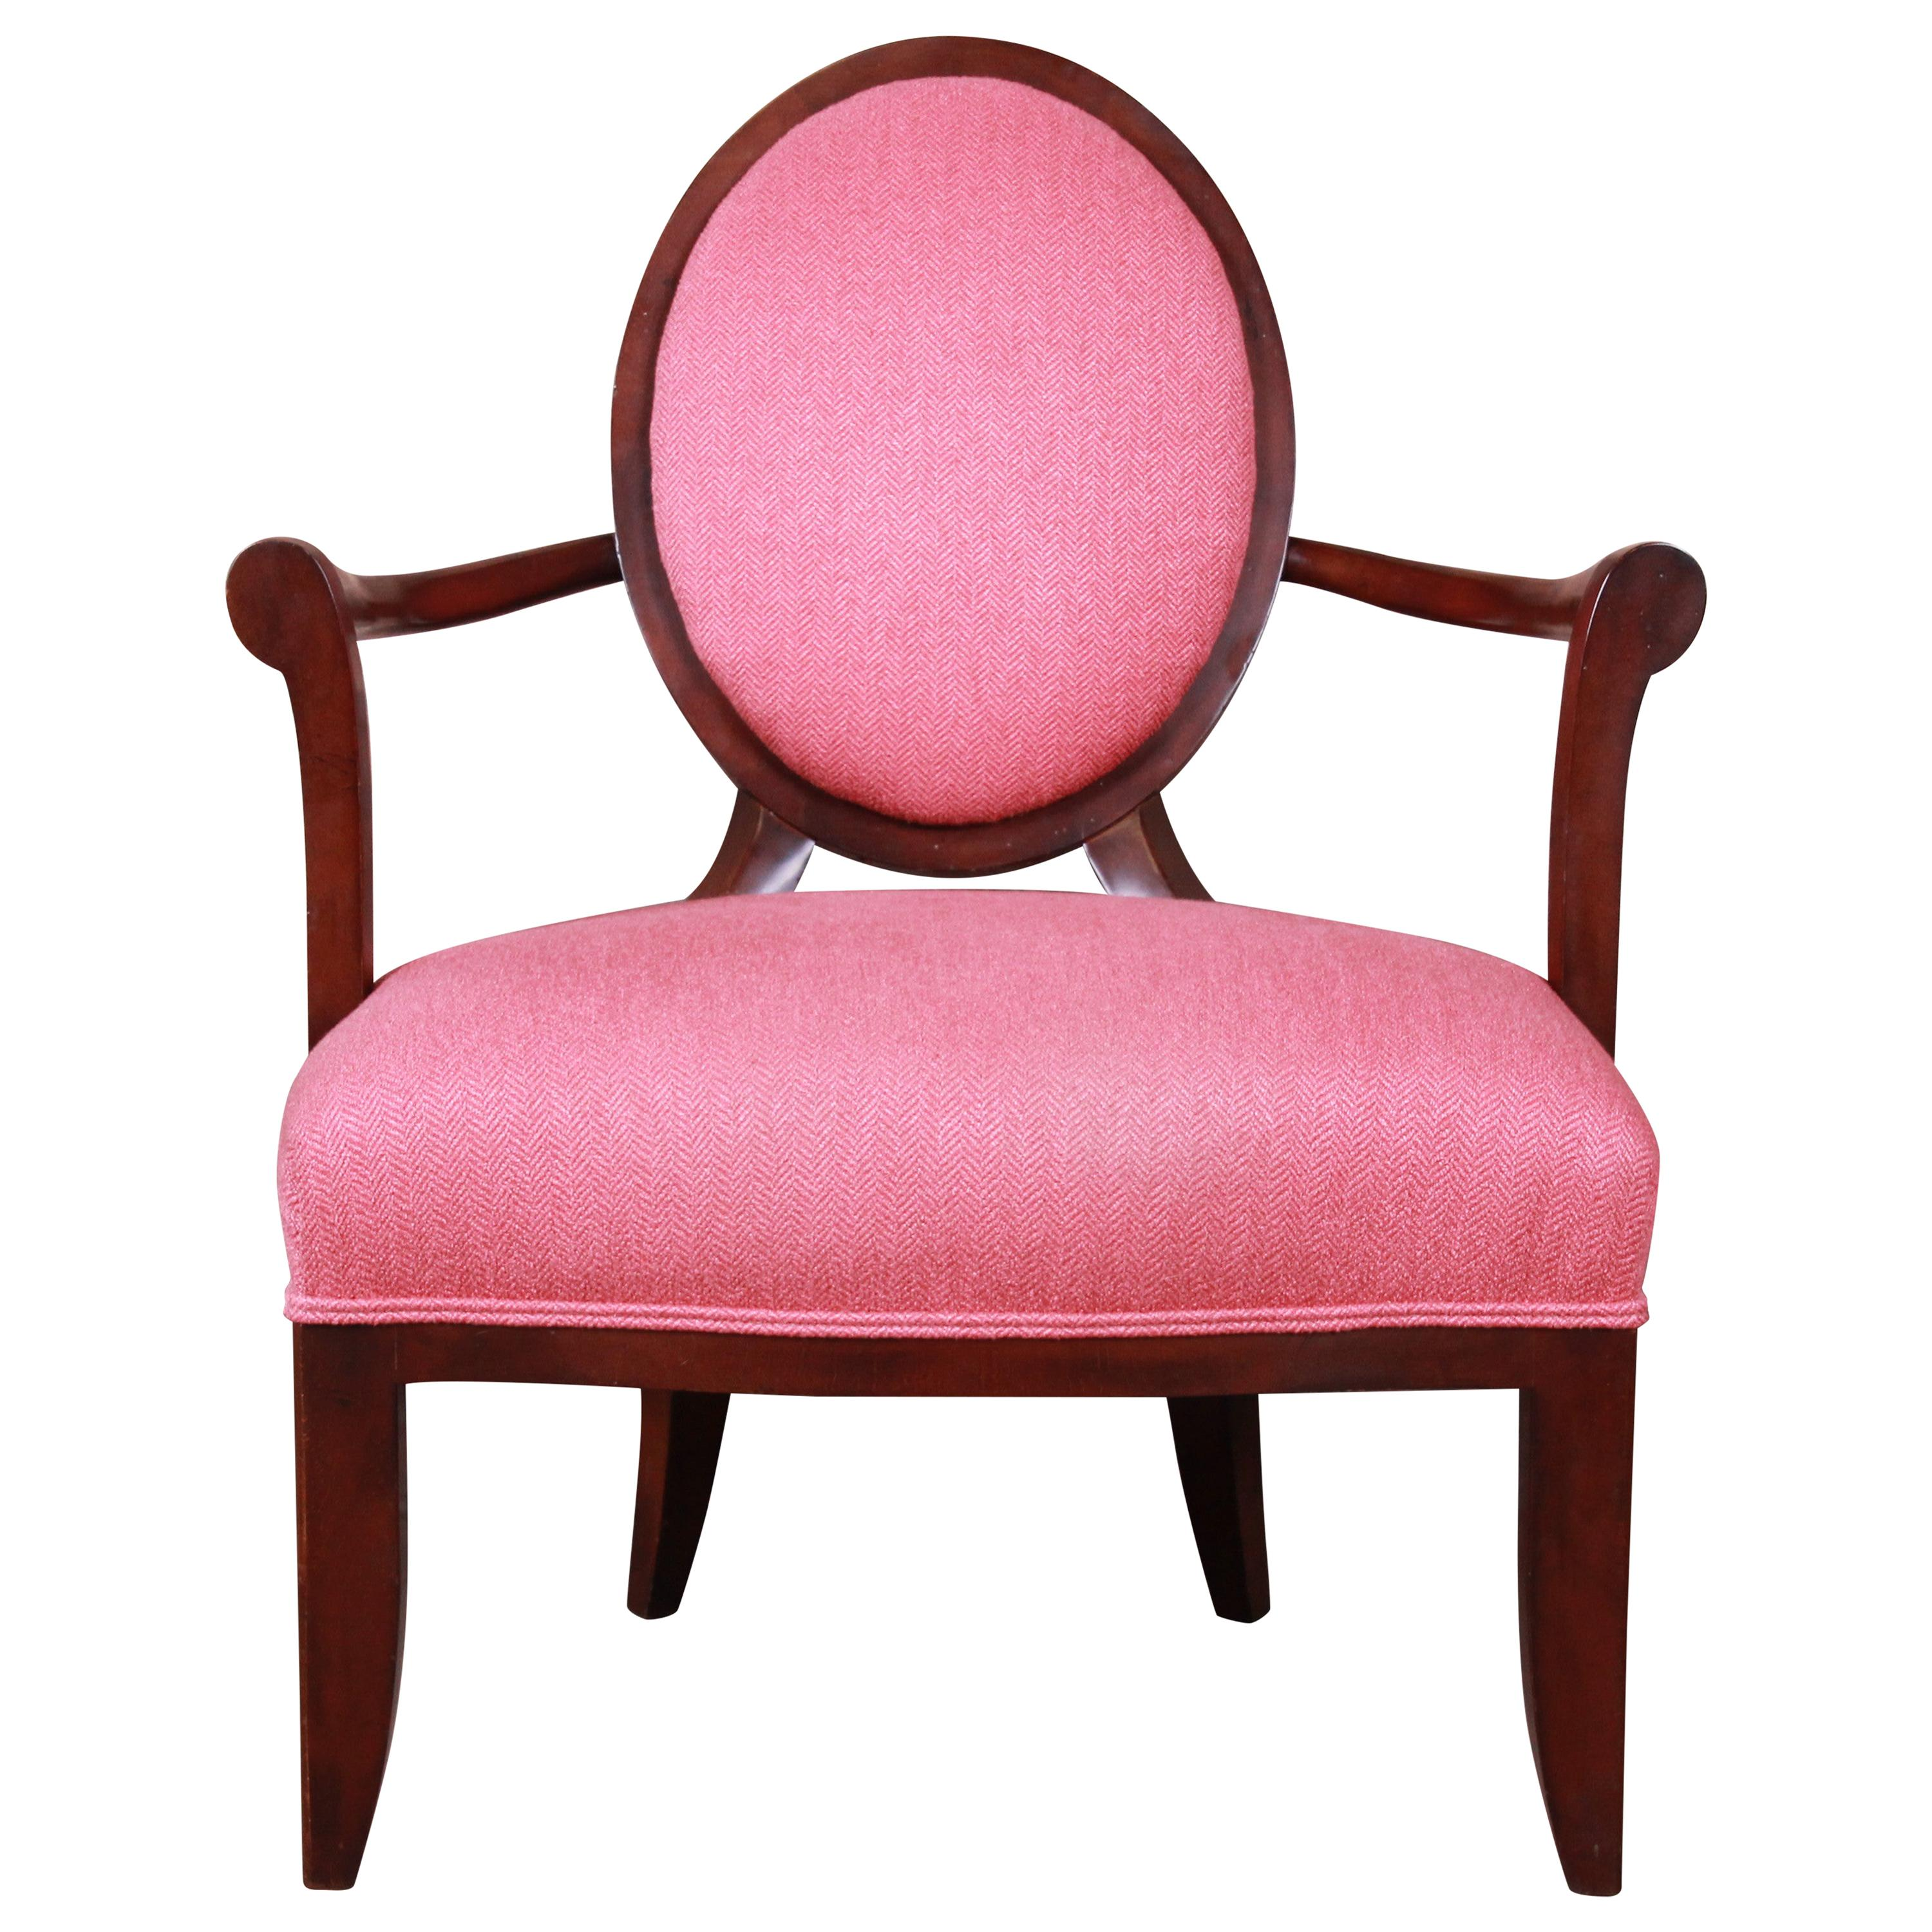 Barbara Barry for Baker Furniture Contemporary Lounge Chair